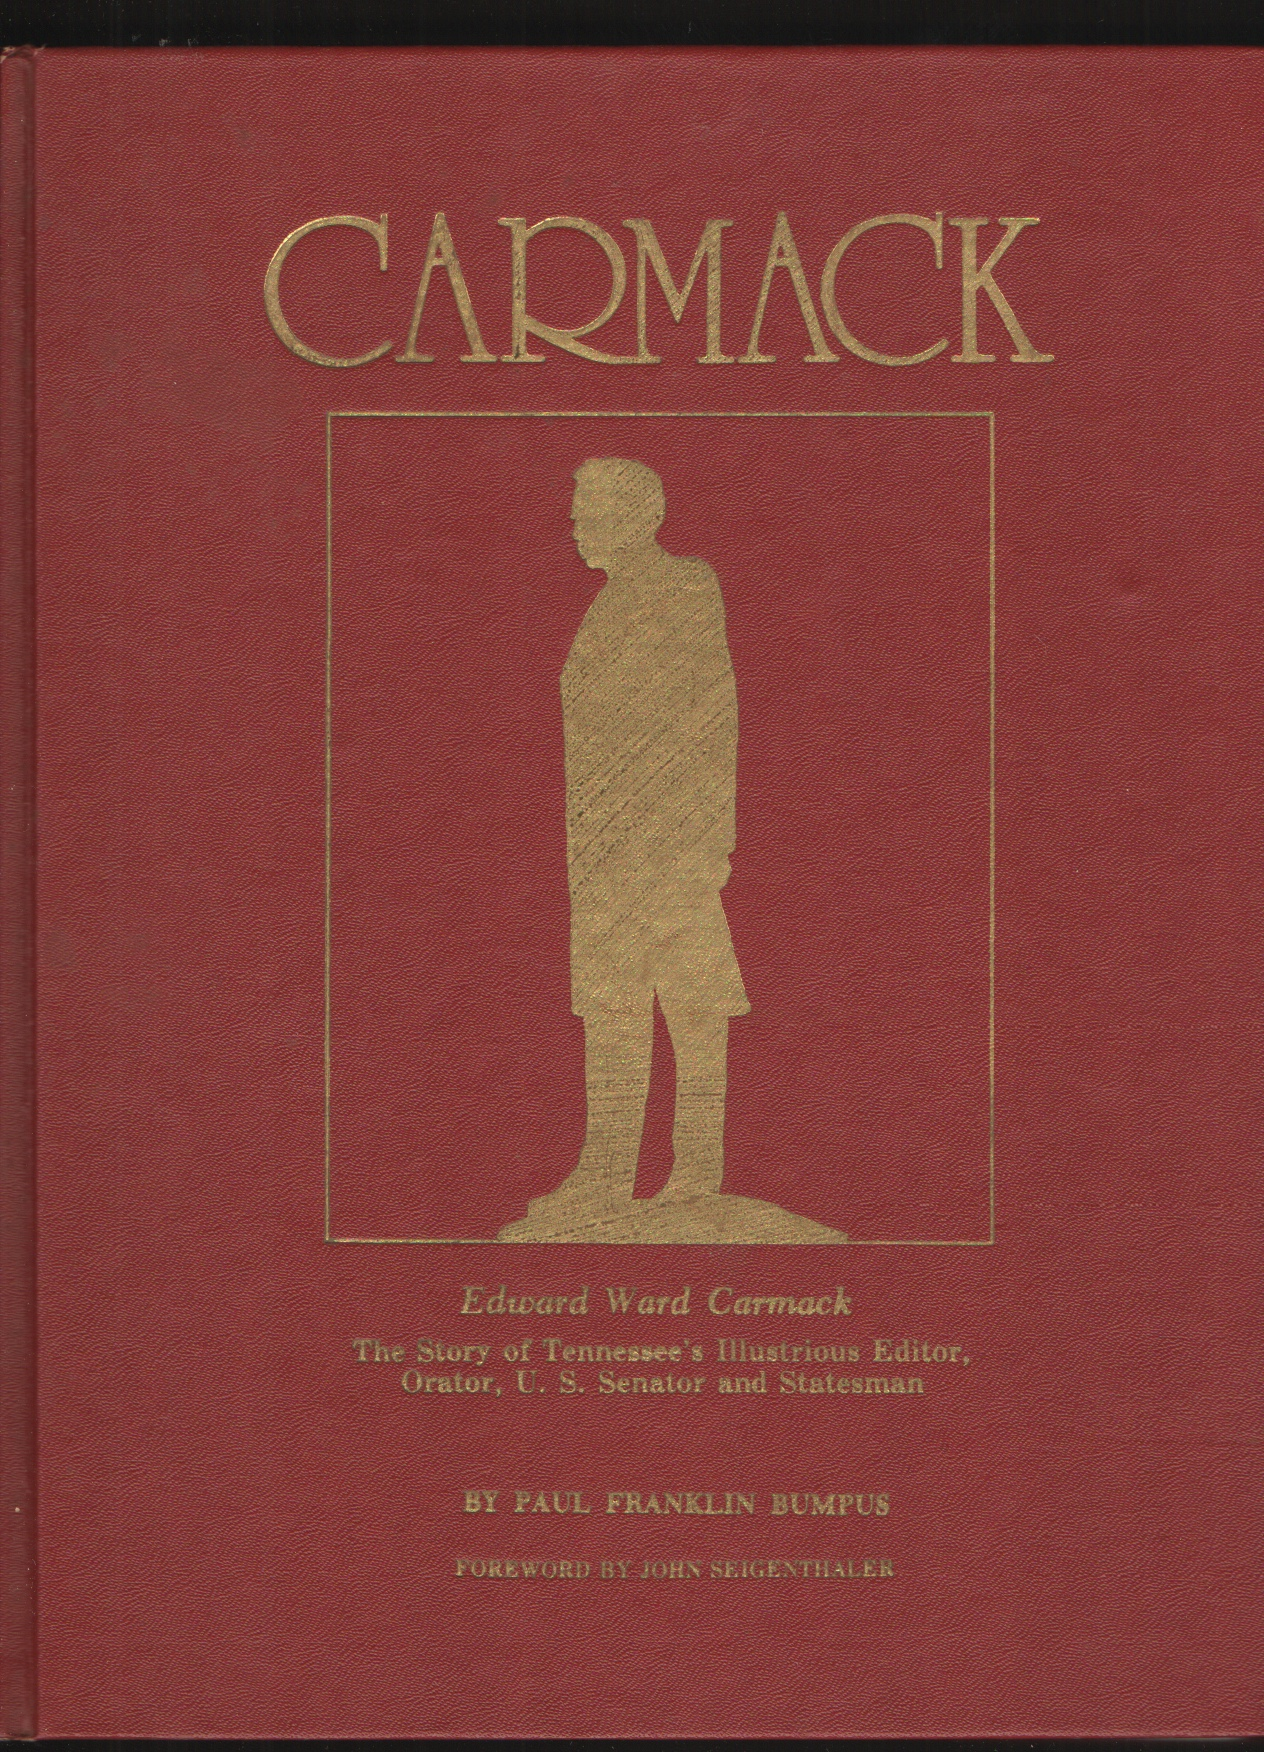 Image for Carmack Edward Ward Carmack